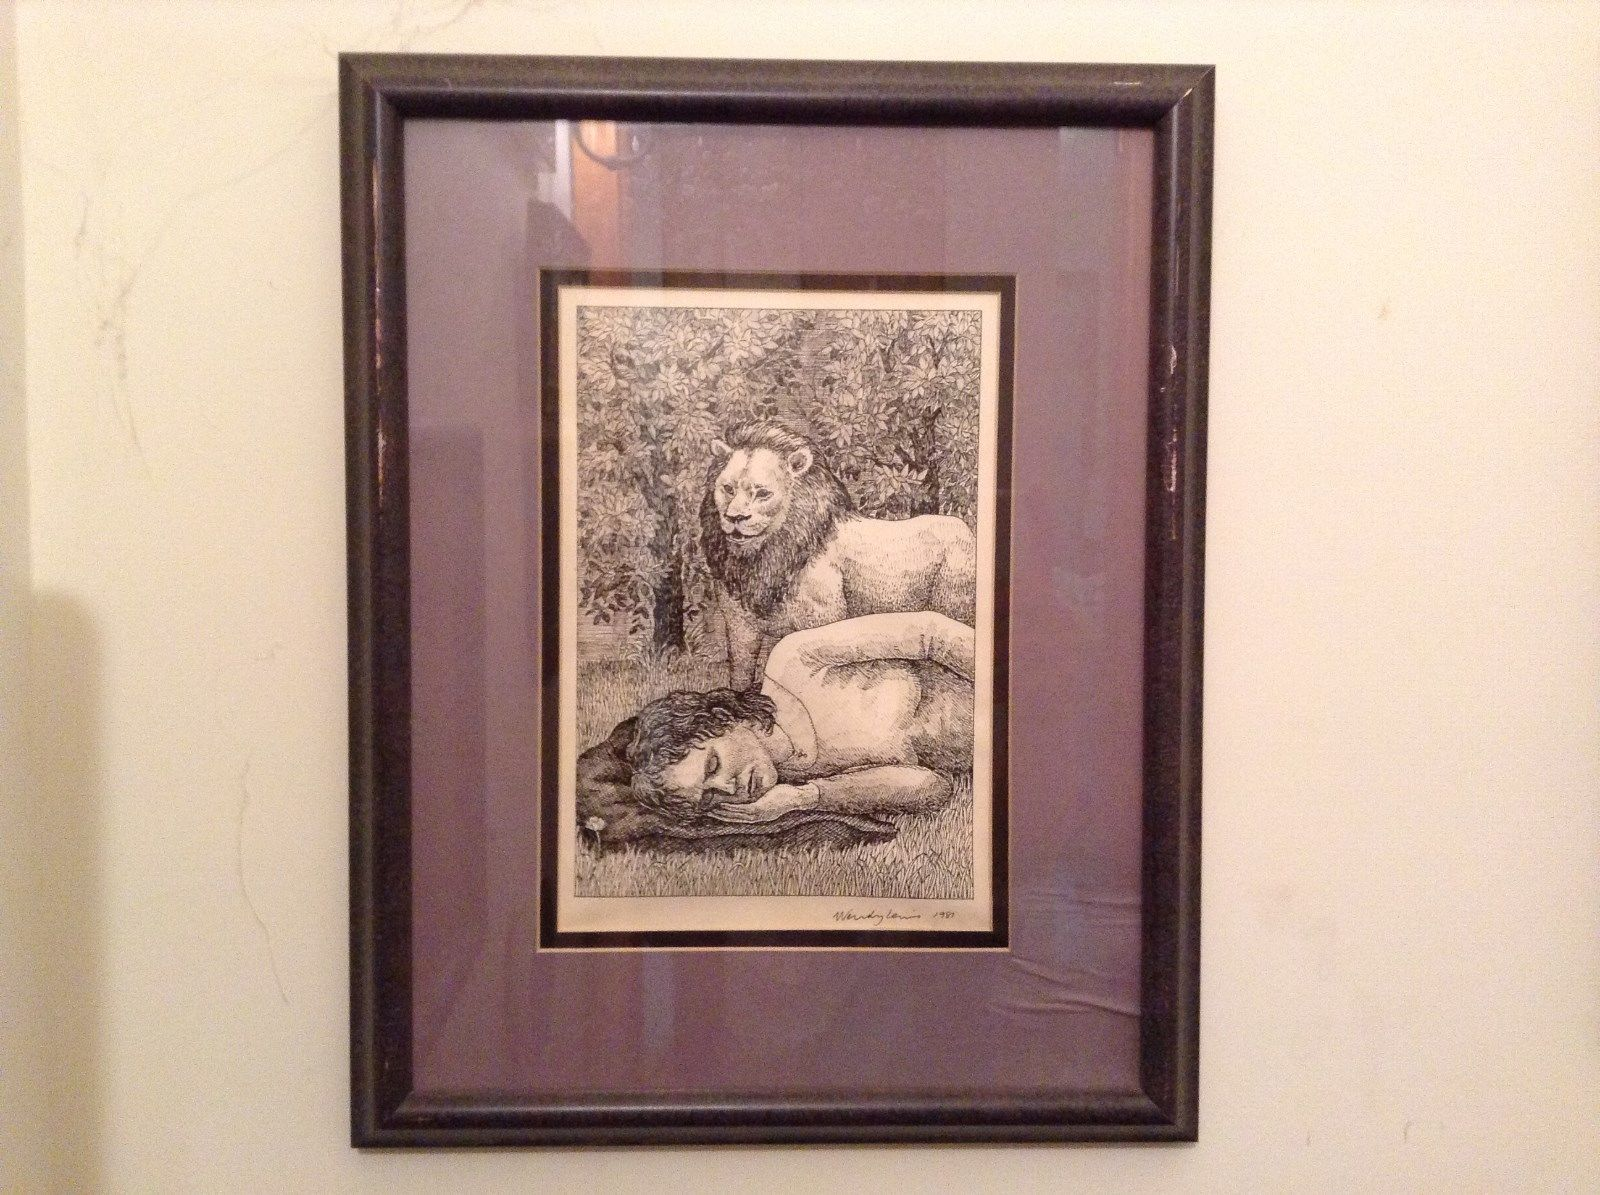 Signed Framed Pen Art by Wendy Lewis 1981 Man Sleeping Being Watched by Lion